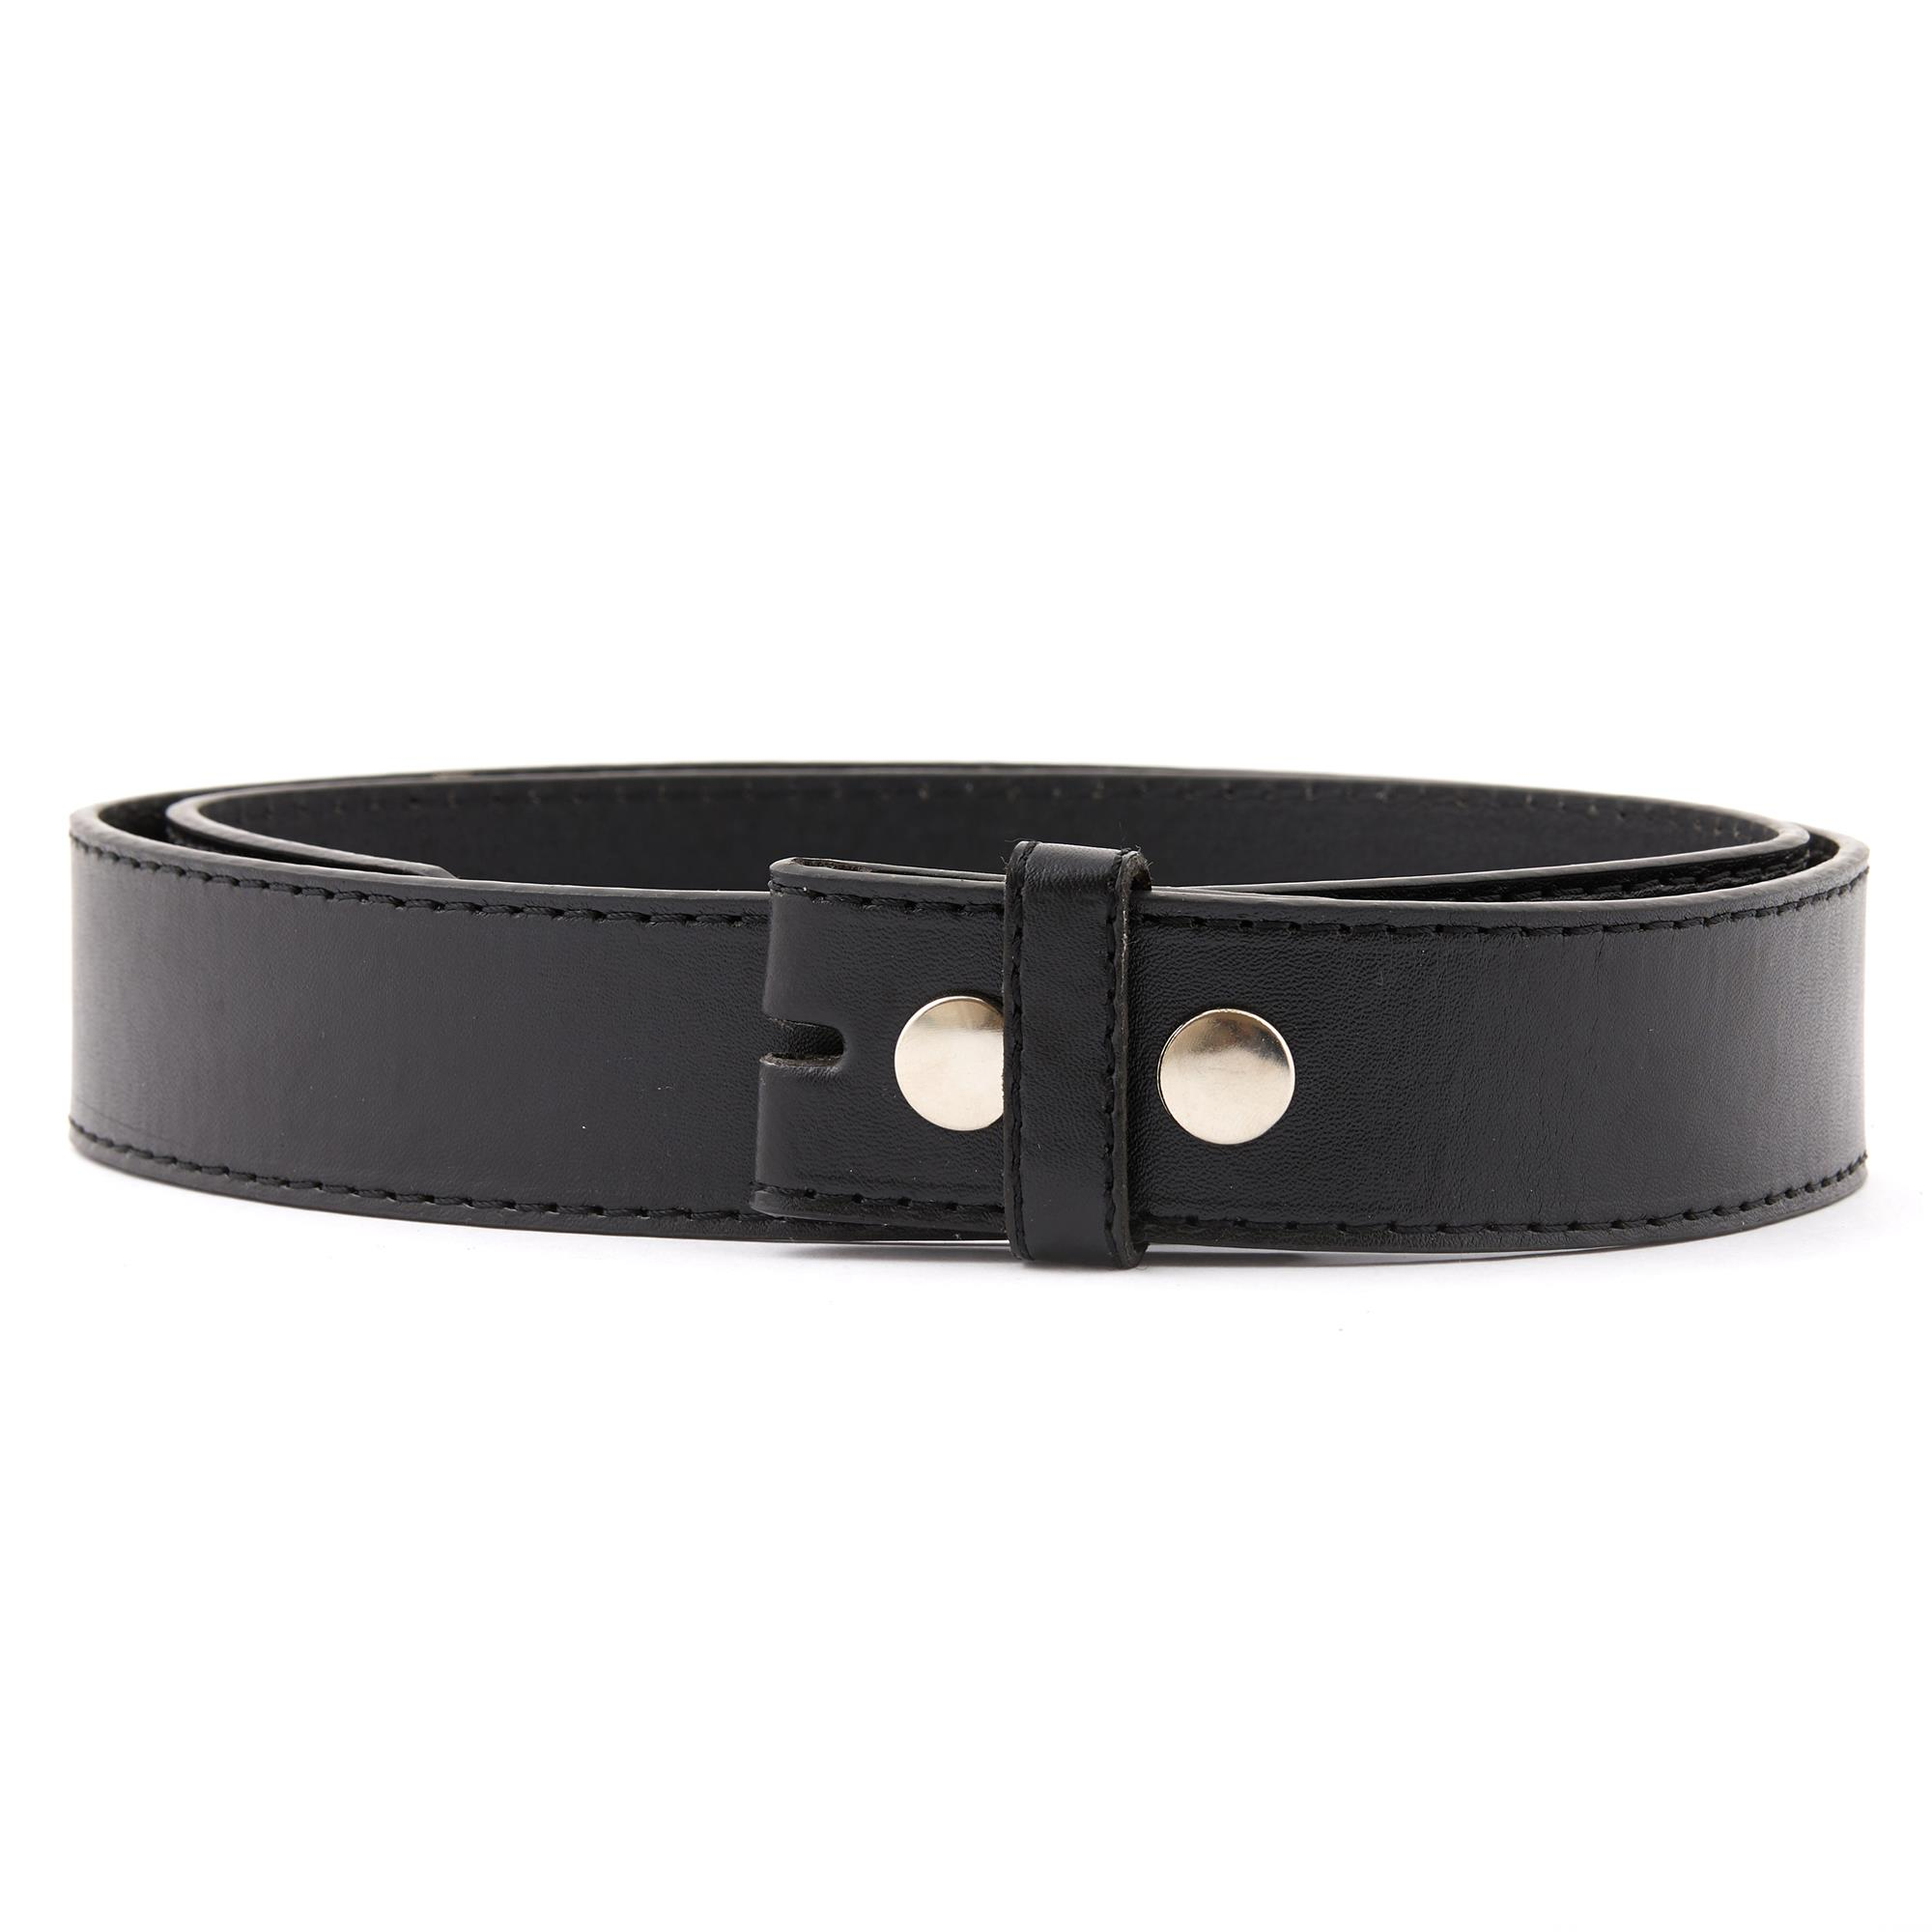 Plain black Without Buckle